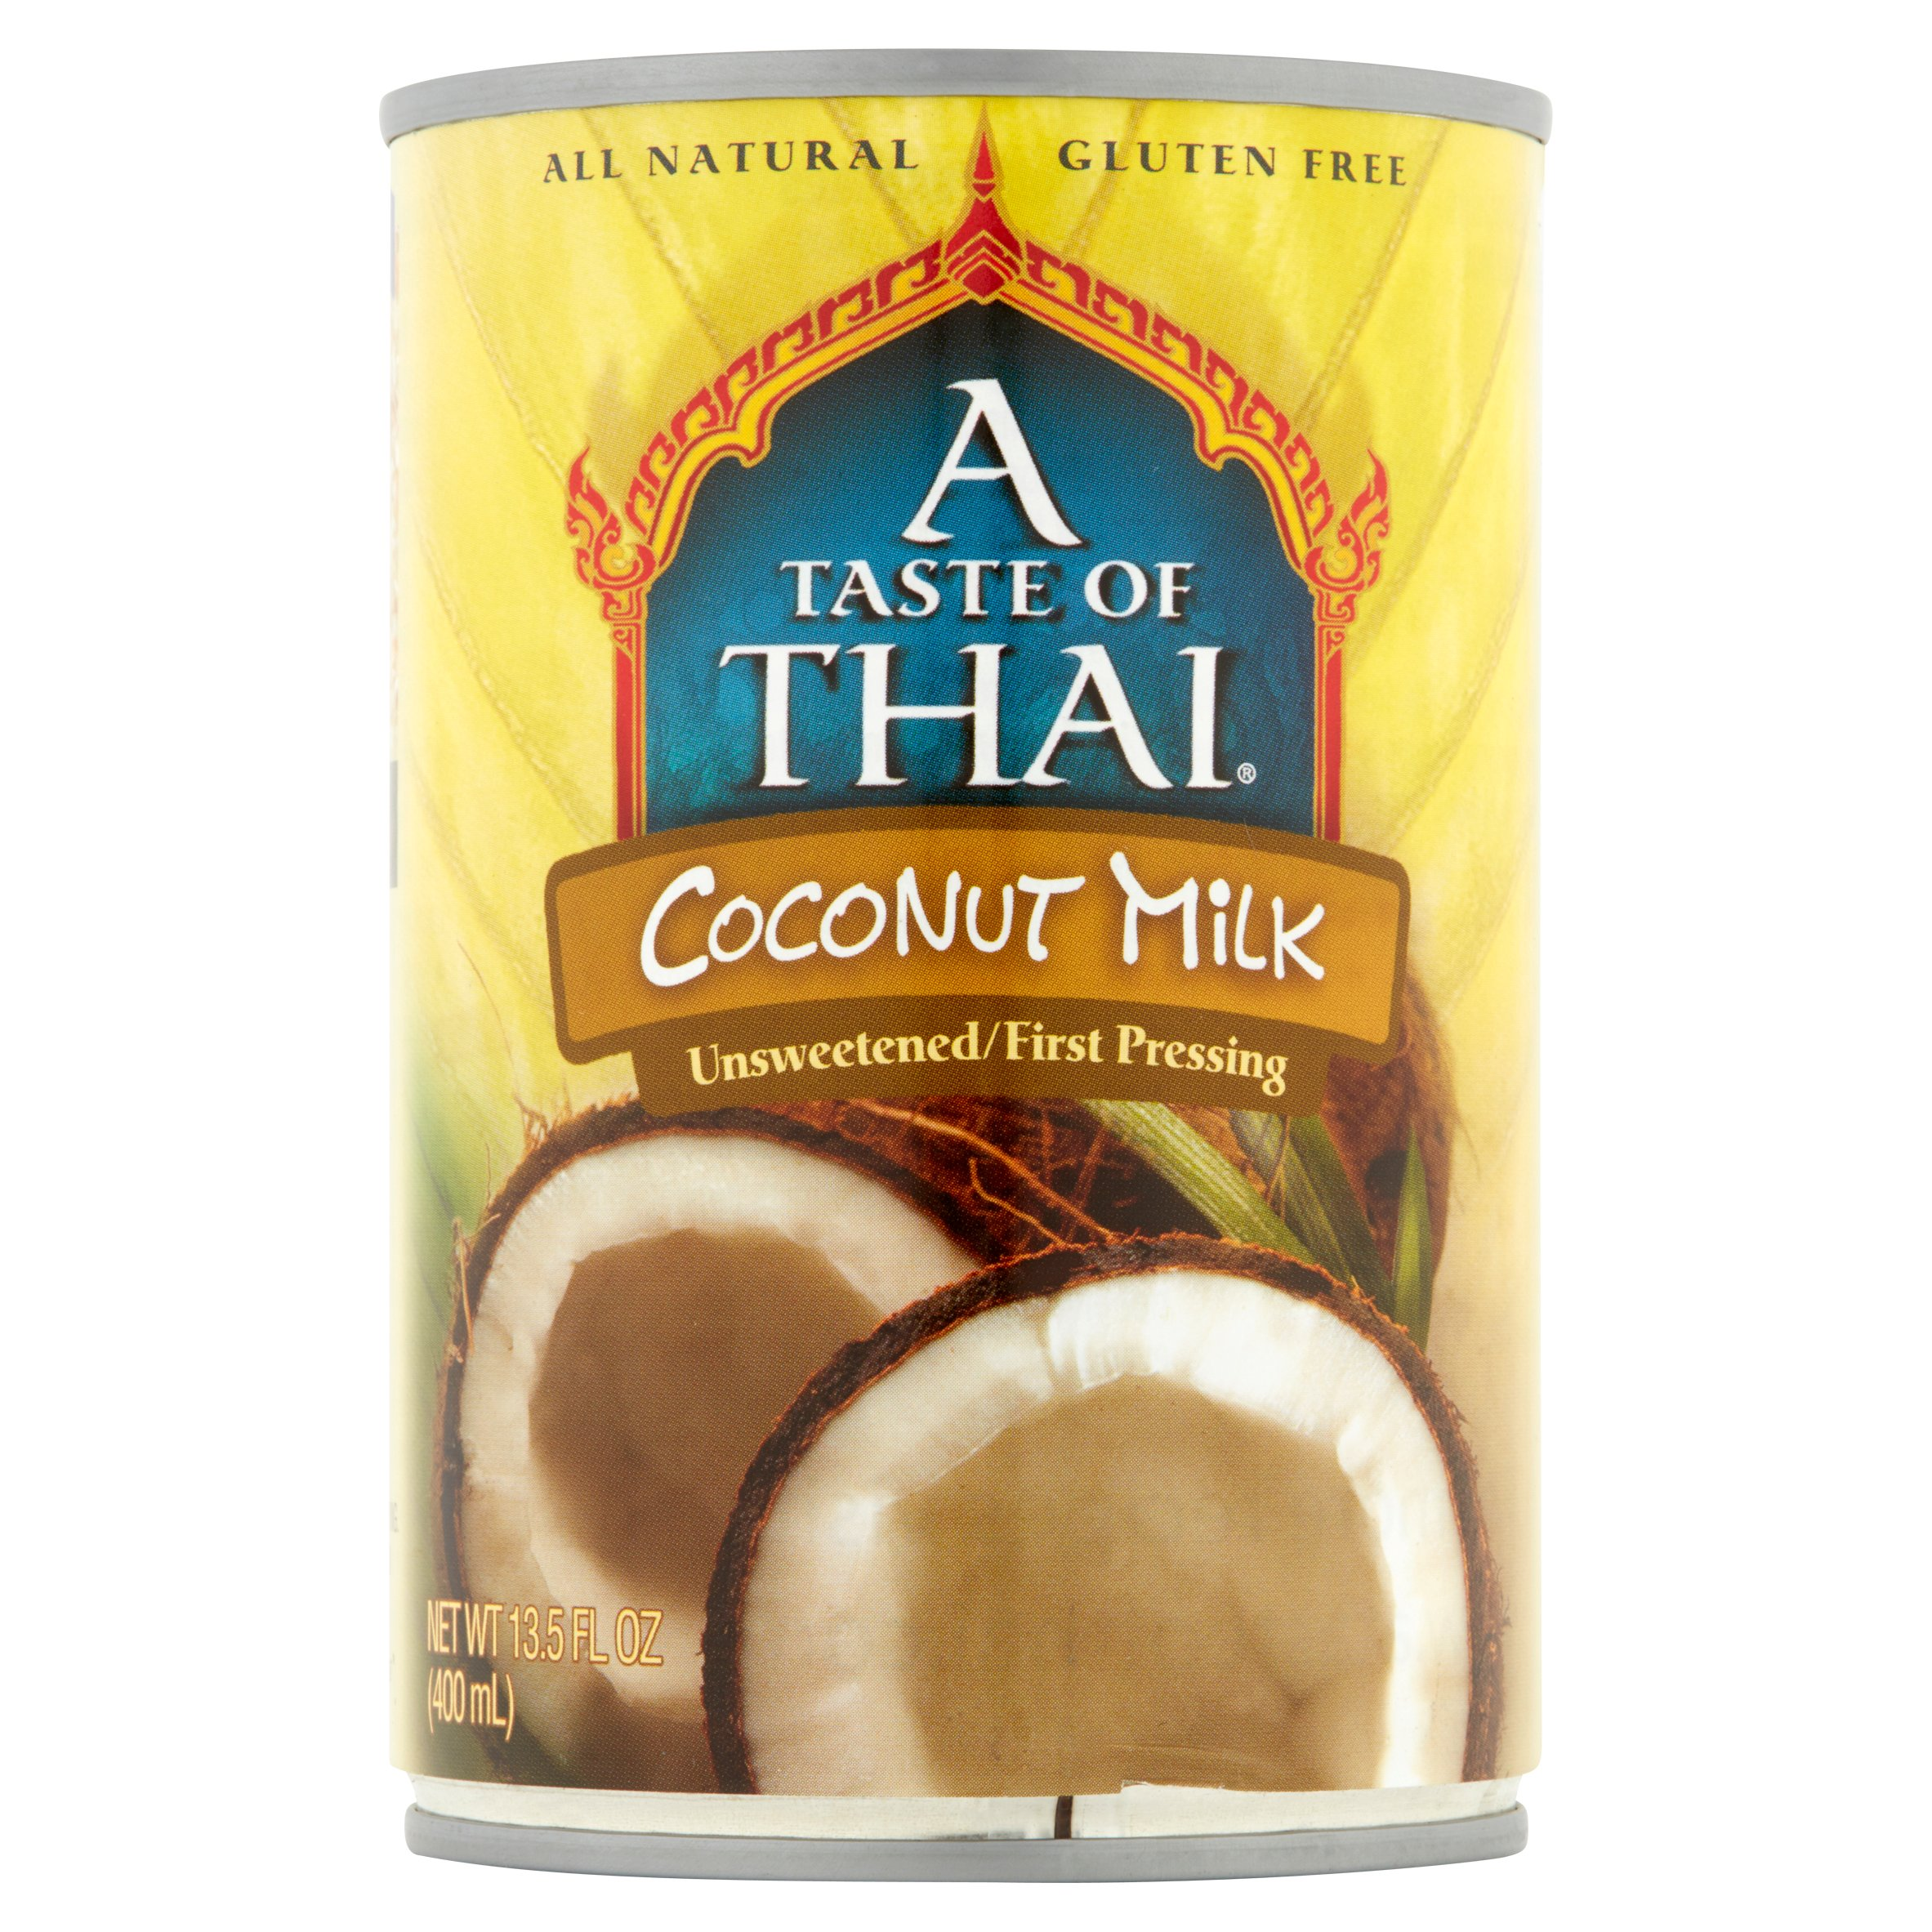 A Taste of Thai Coconut Milk 13.5fl oz by Andre Prost, Inc.